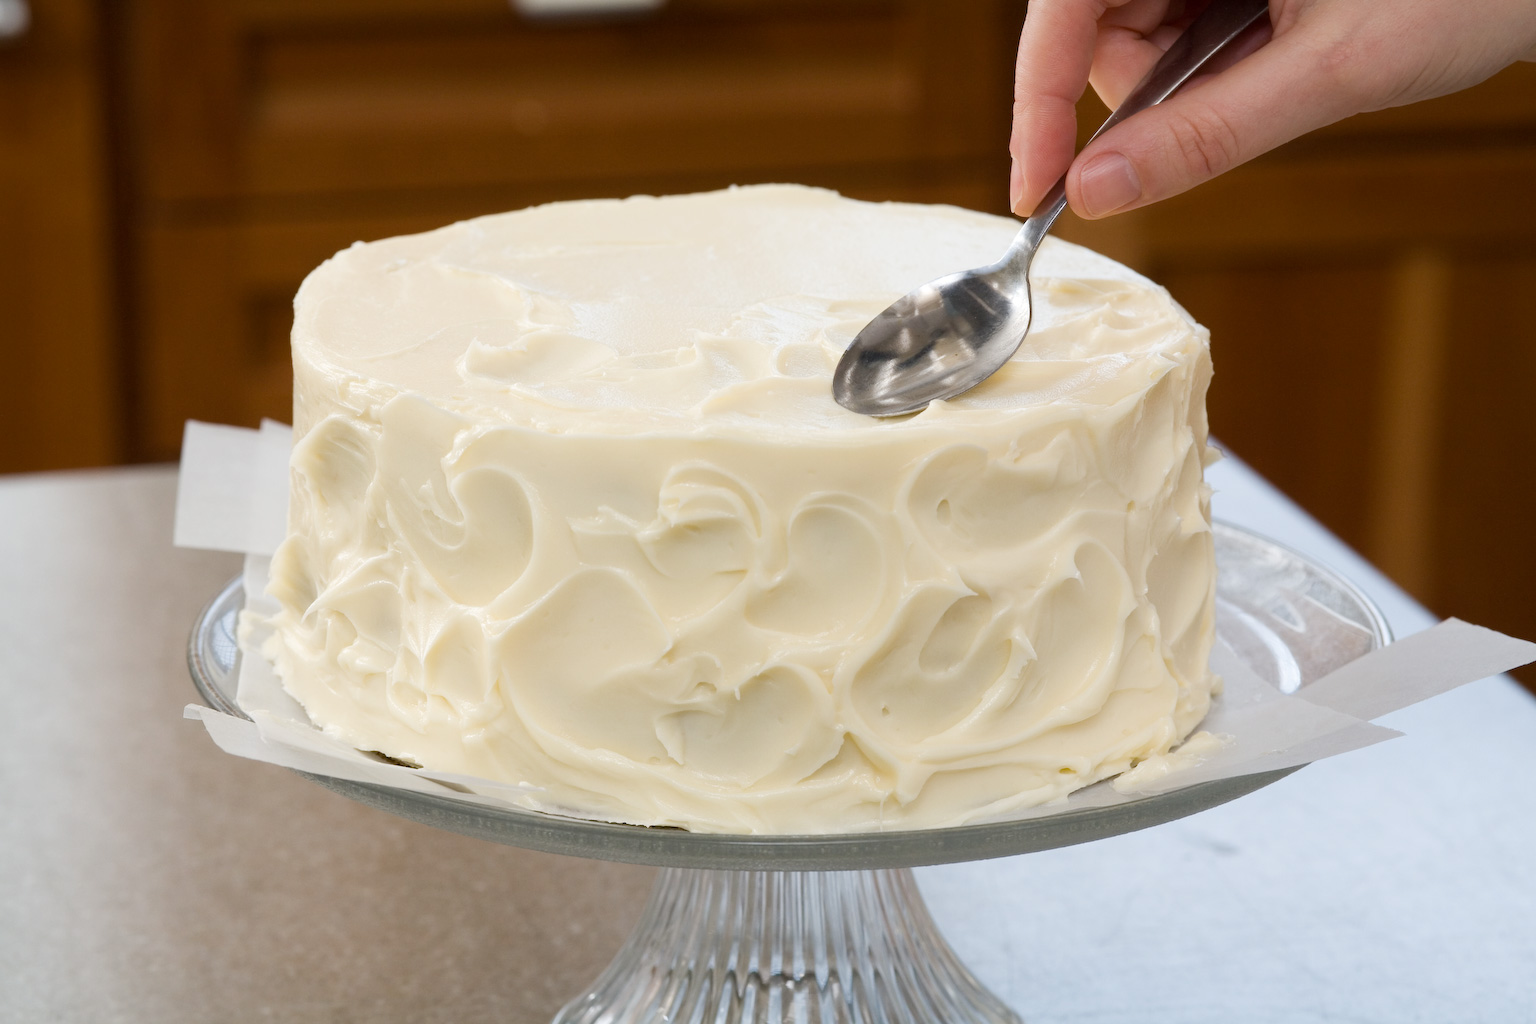 Easy Cake Decorating Ideas With Buttercream Icing : Easy Bake Games: Secrets to Decorating Layer Cakes